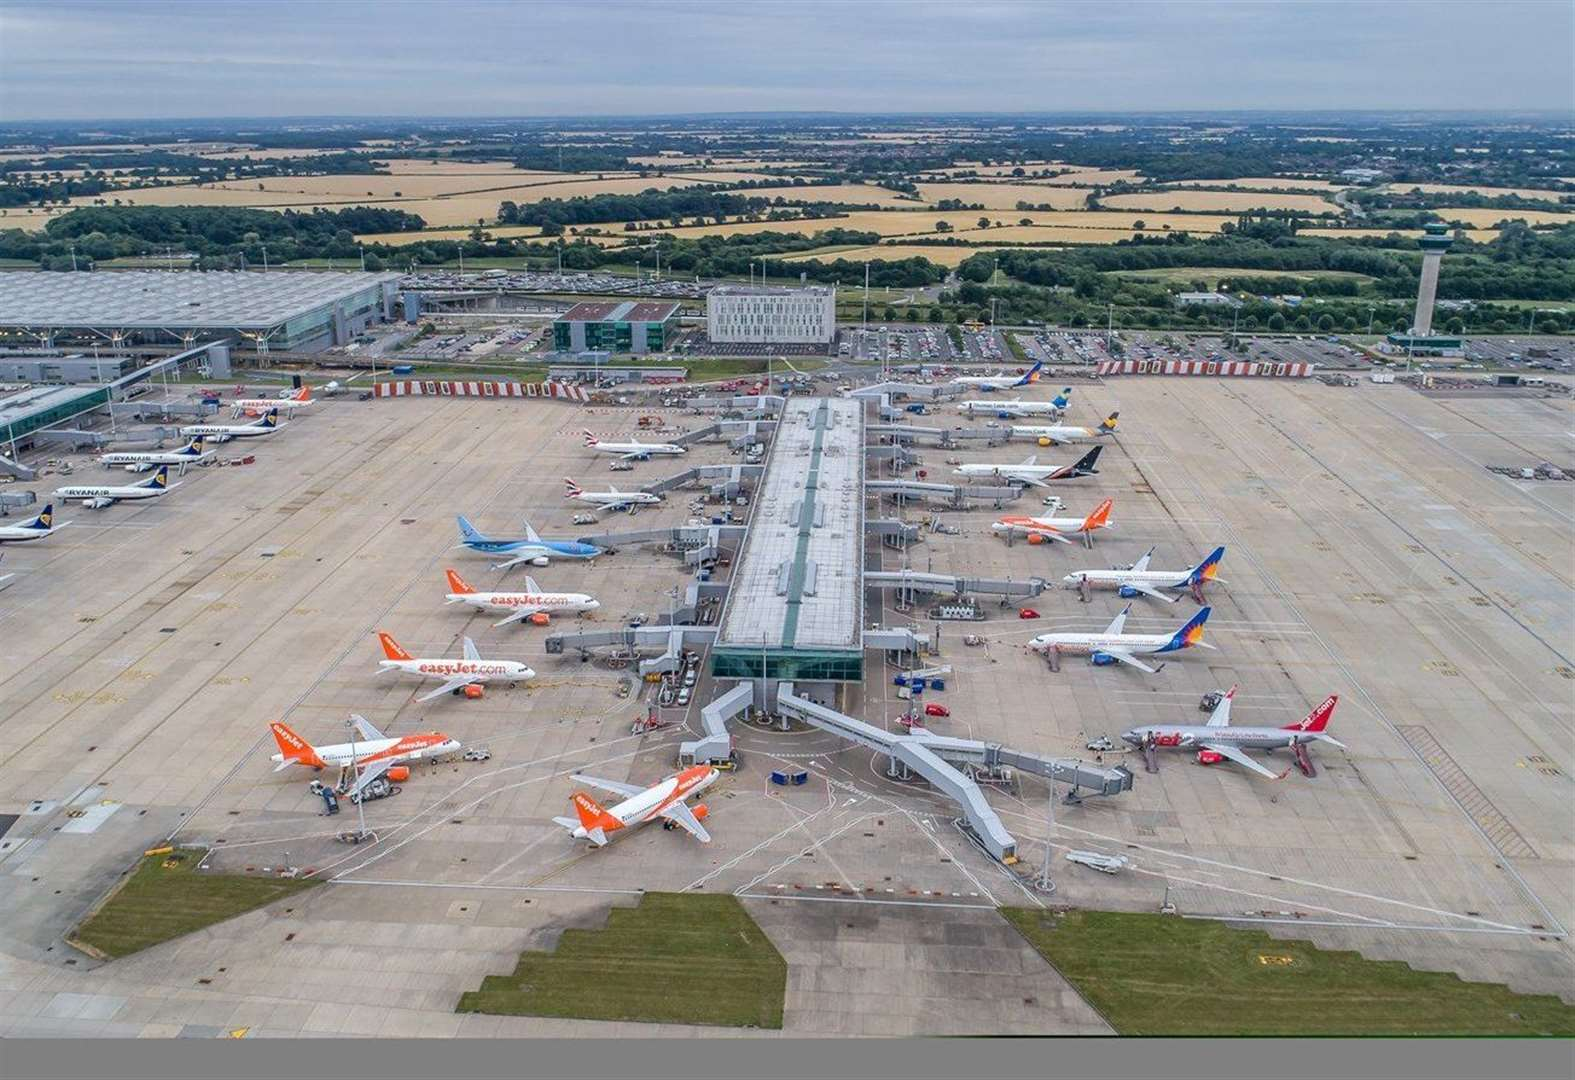 Council under fire from business bodies for risking jobs by delaying Stansted Airport decision